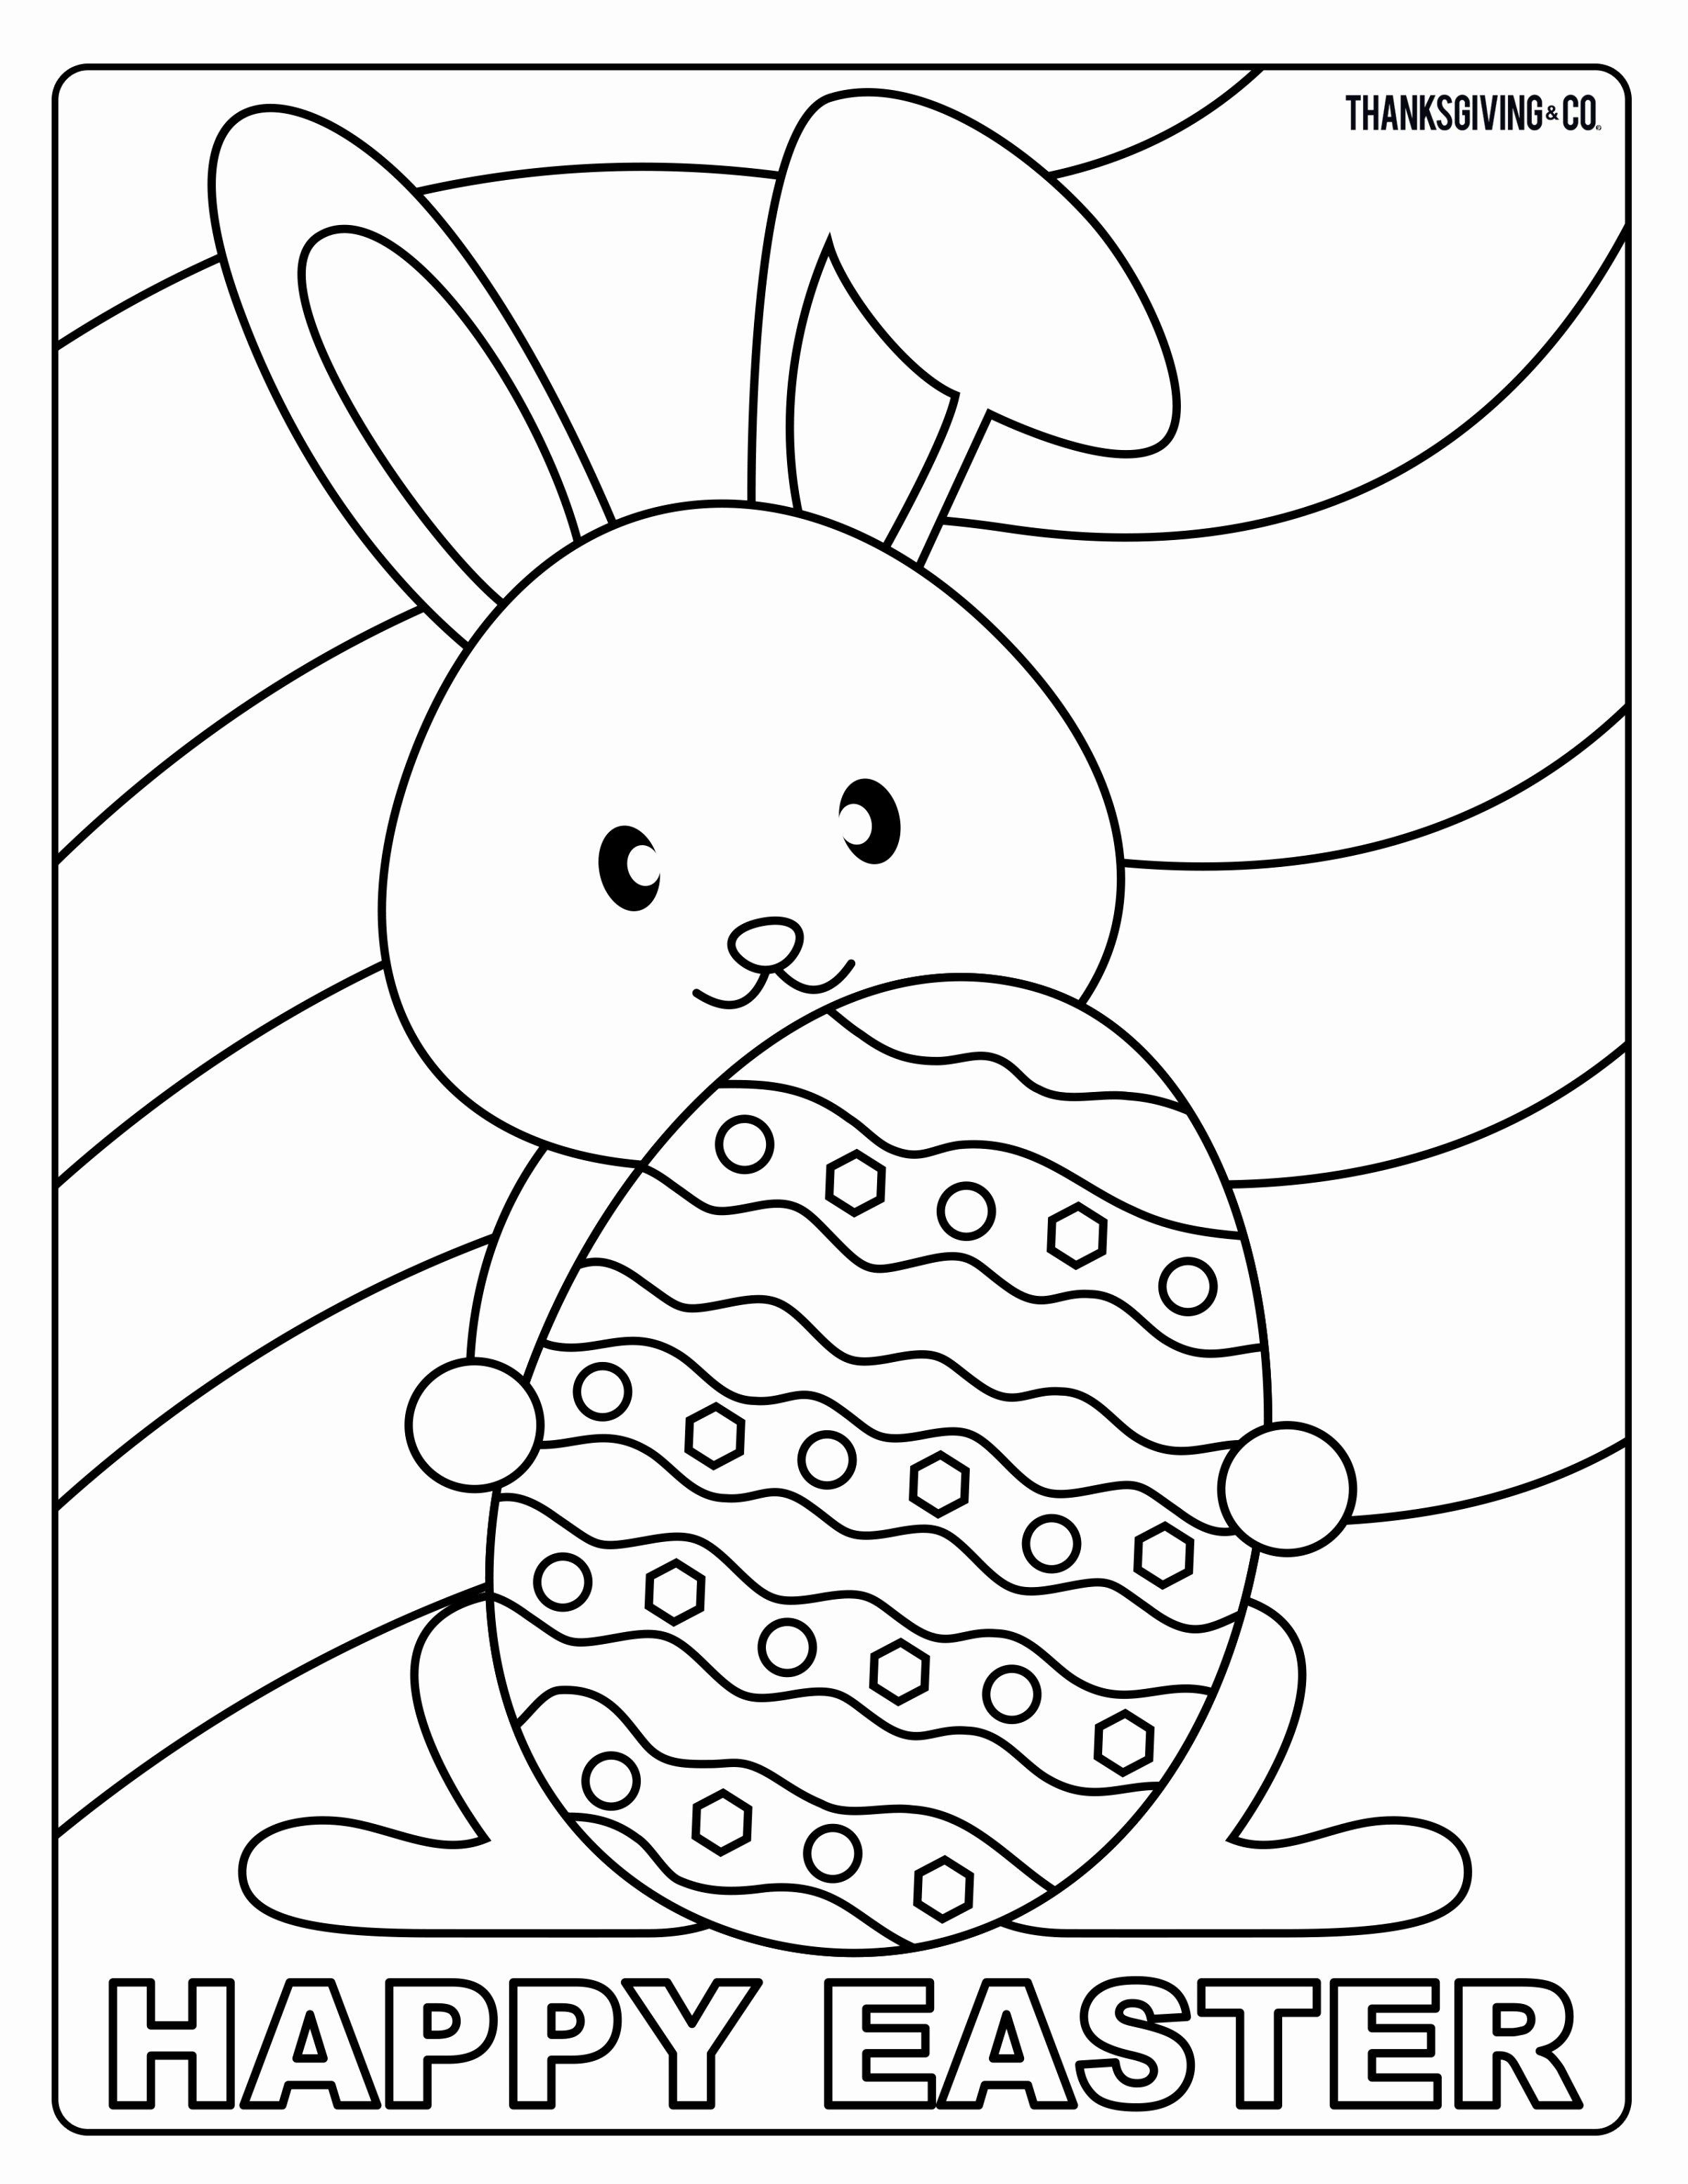 Coloring Page Easter Printable In 2020 With Images Bunny